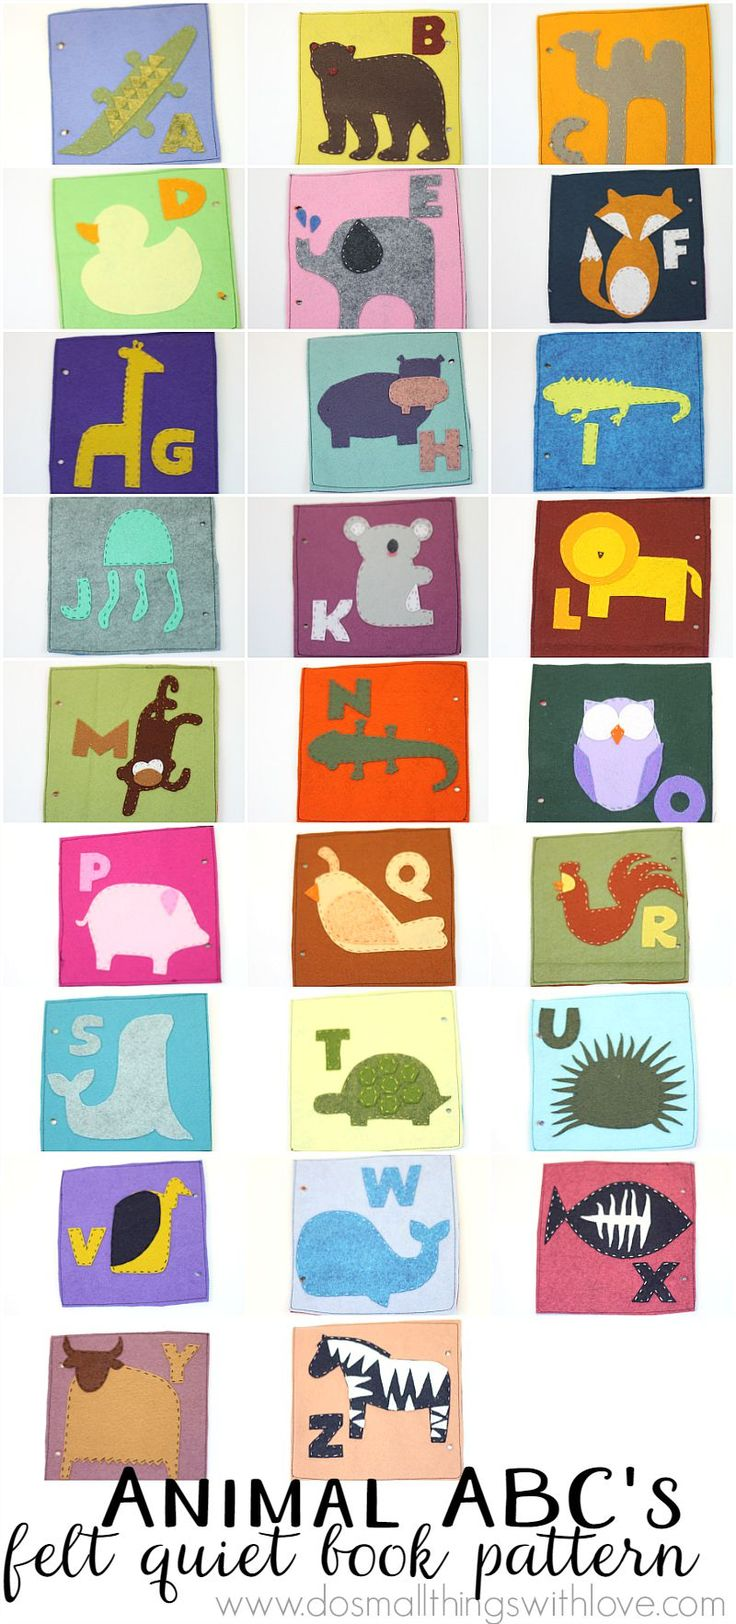 Arabic alphabet for kids with cute animals and fruit for each letter - Animal Themed Felt Quiet Book Pattern Now Available